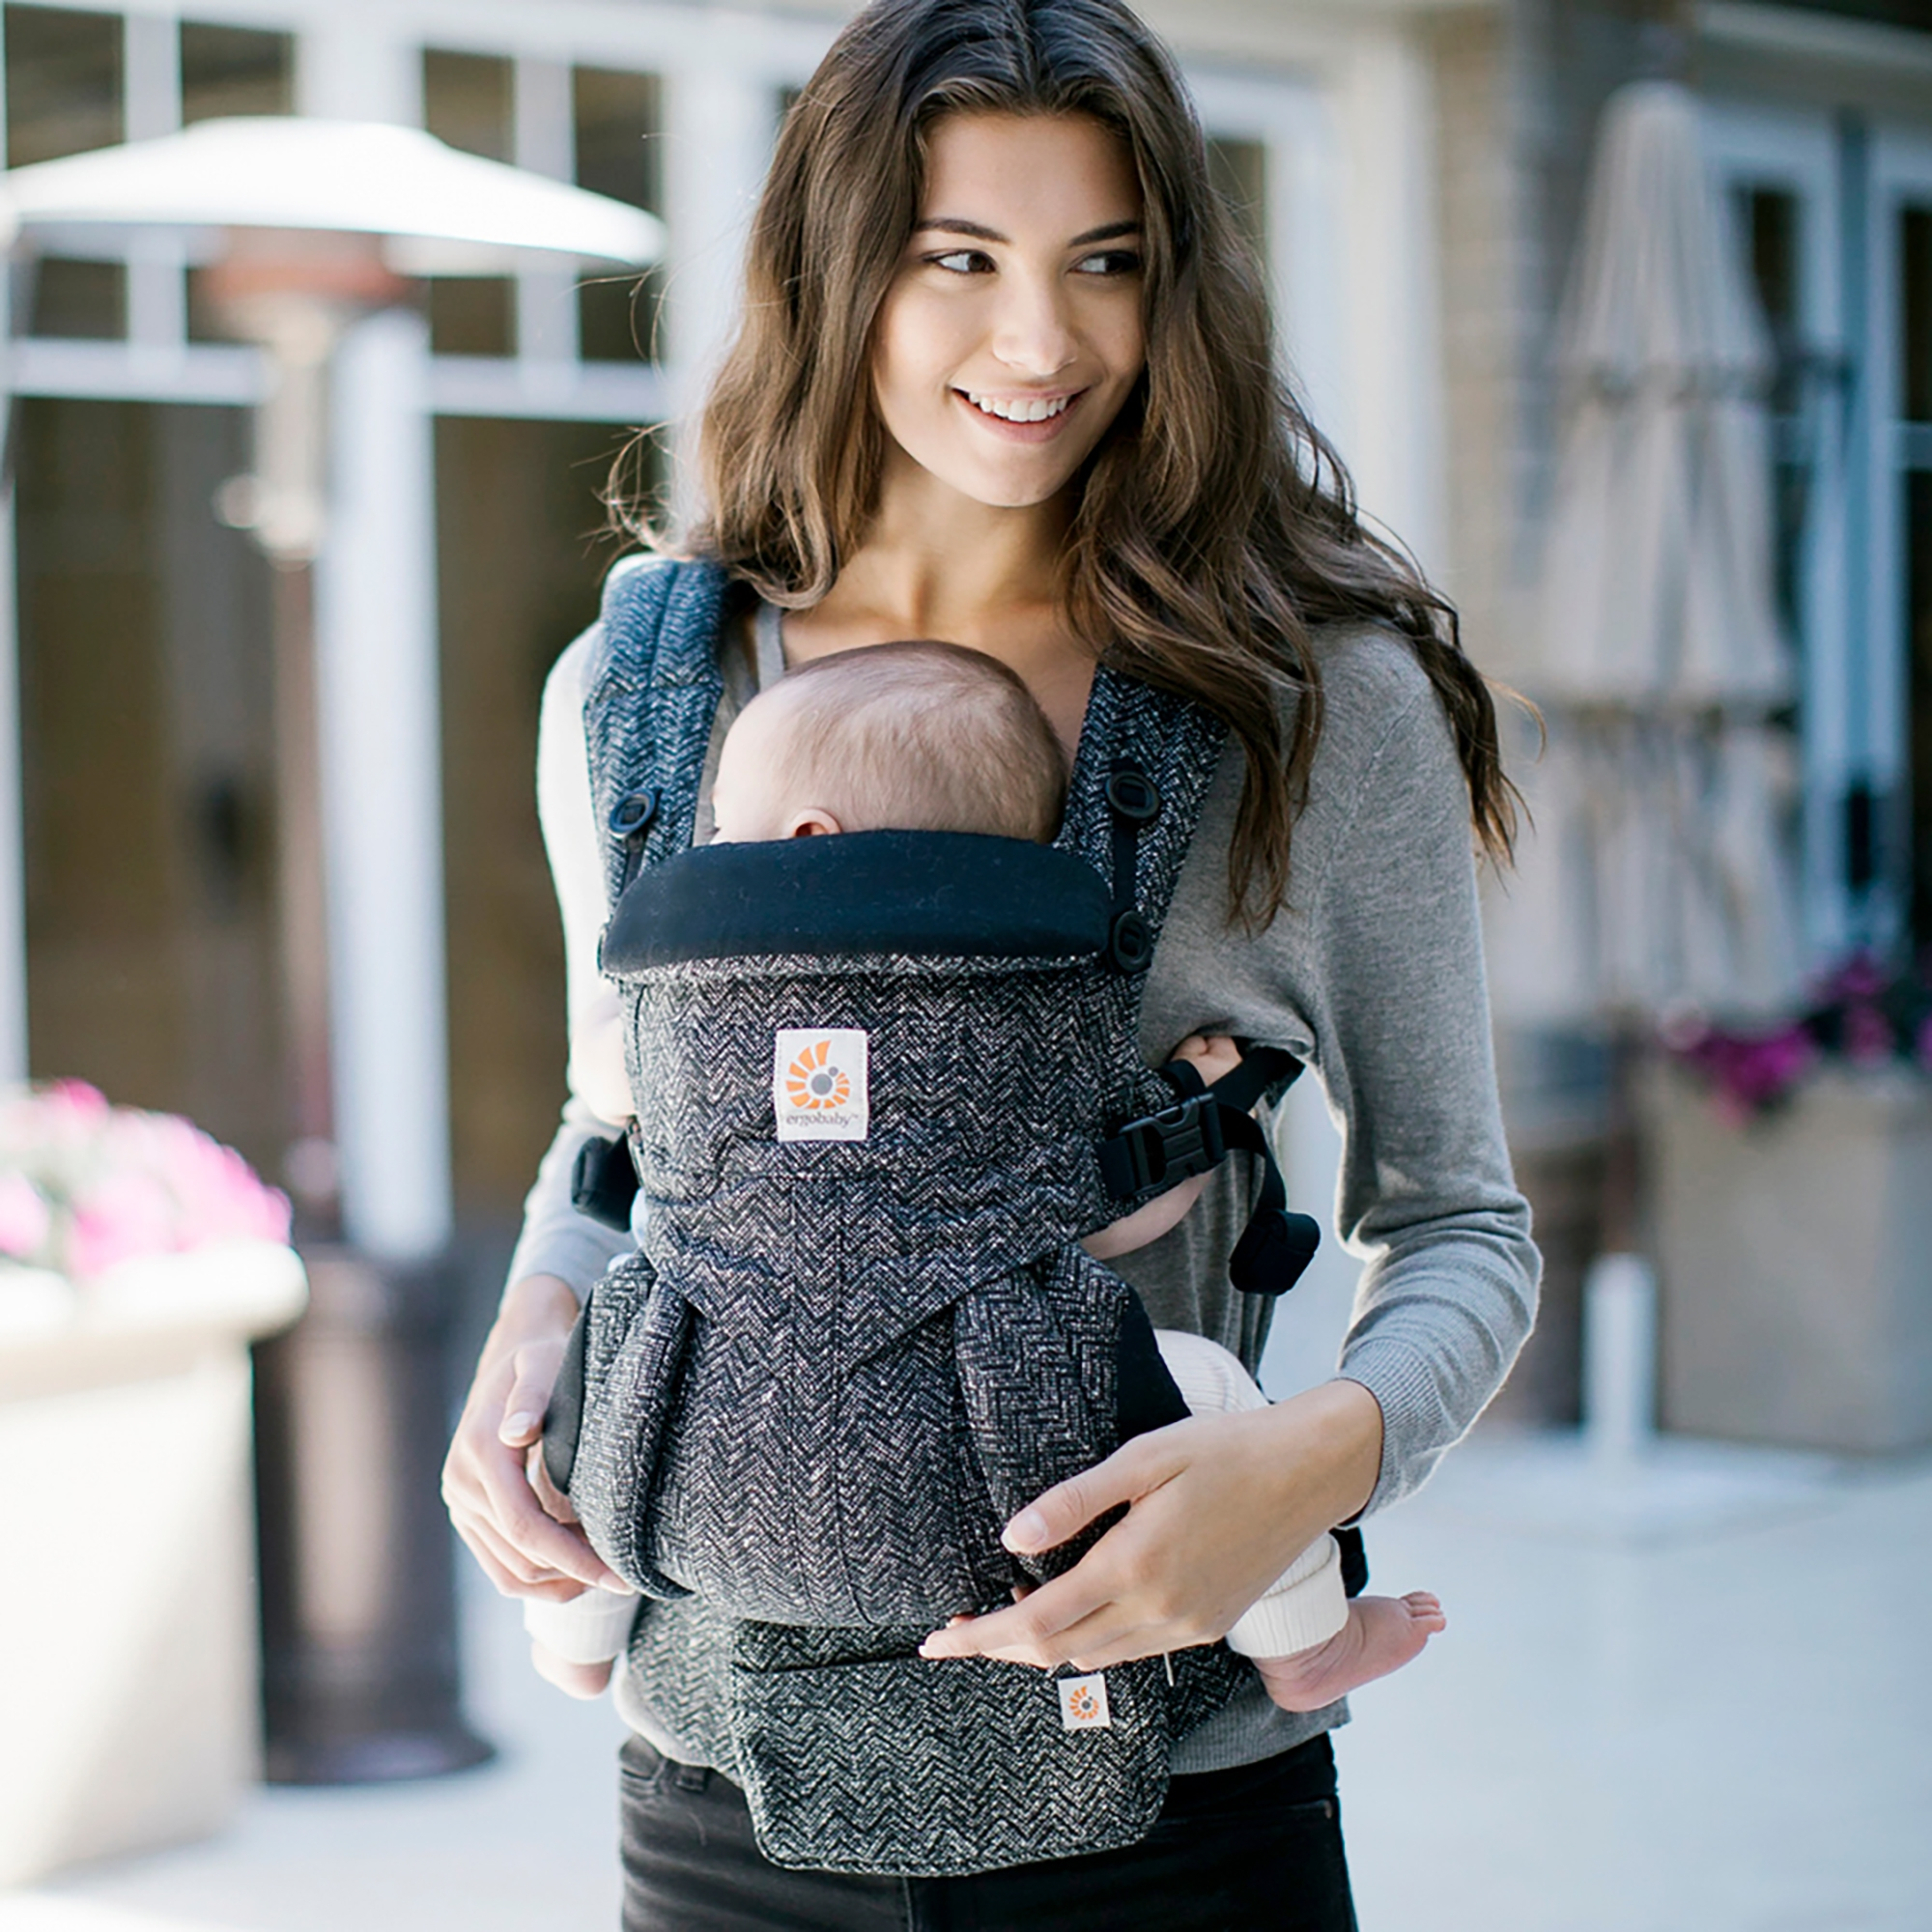 d3263c58194 ... Baby Carriers   Ergobaby Omni 360 Carrier-Herringbone (Free Shipping).  Previous